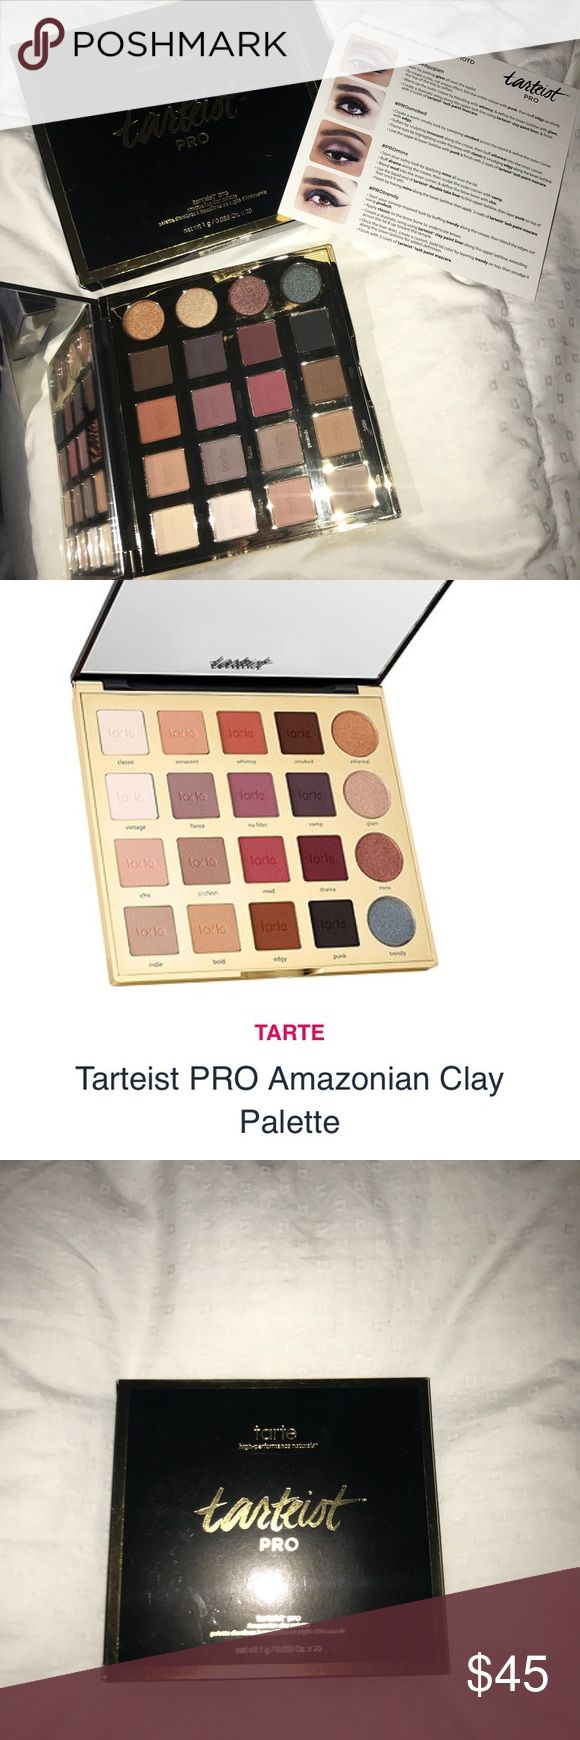 Tarts Tarteist Pro Amazonian Clay Palette NIB This listing offers a brand new in box Tarte Palette       ° Type: Tarteist Pro Amazonian Clay      ° Shades          Classic (cream)          Ethereal (bronze)          Vintage (ivory)          Fierce (cool plum)          No Filter (purple mauve)          Vamp (deep plum) + many more!!      ° MSRP: $53    Happy Buying ✌🏽 tarte Makeup Eyeshadow